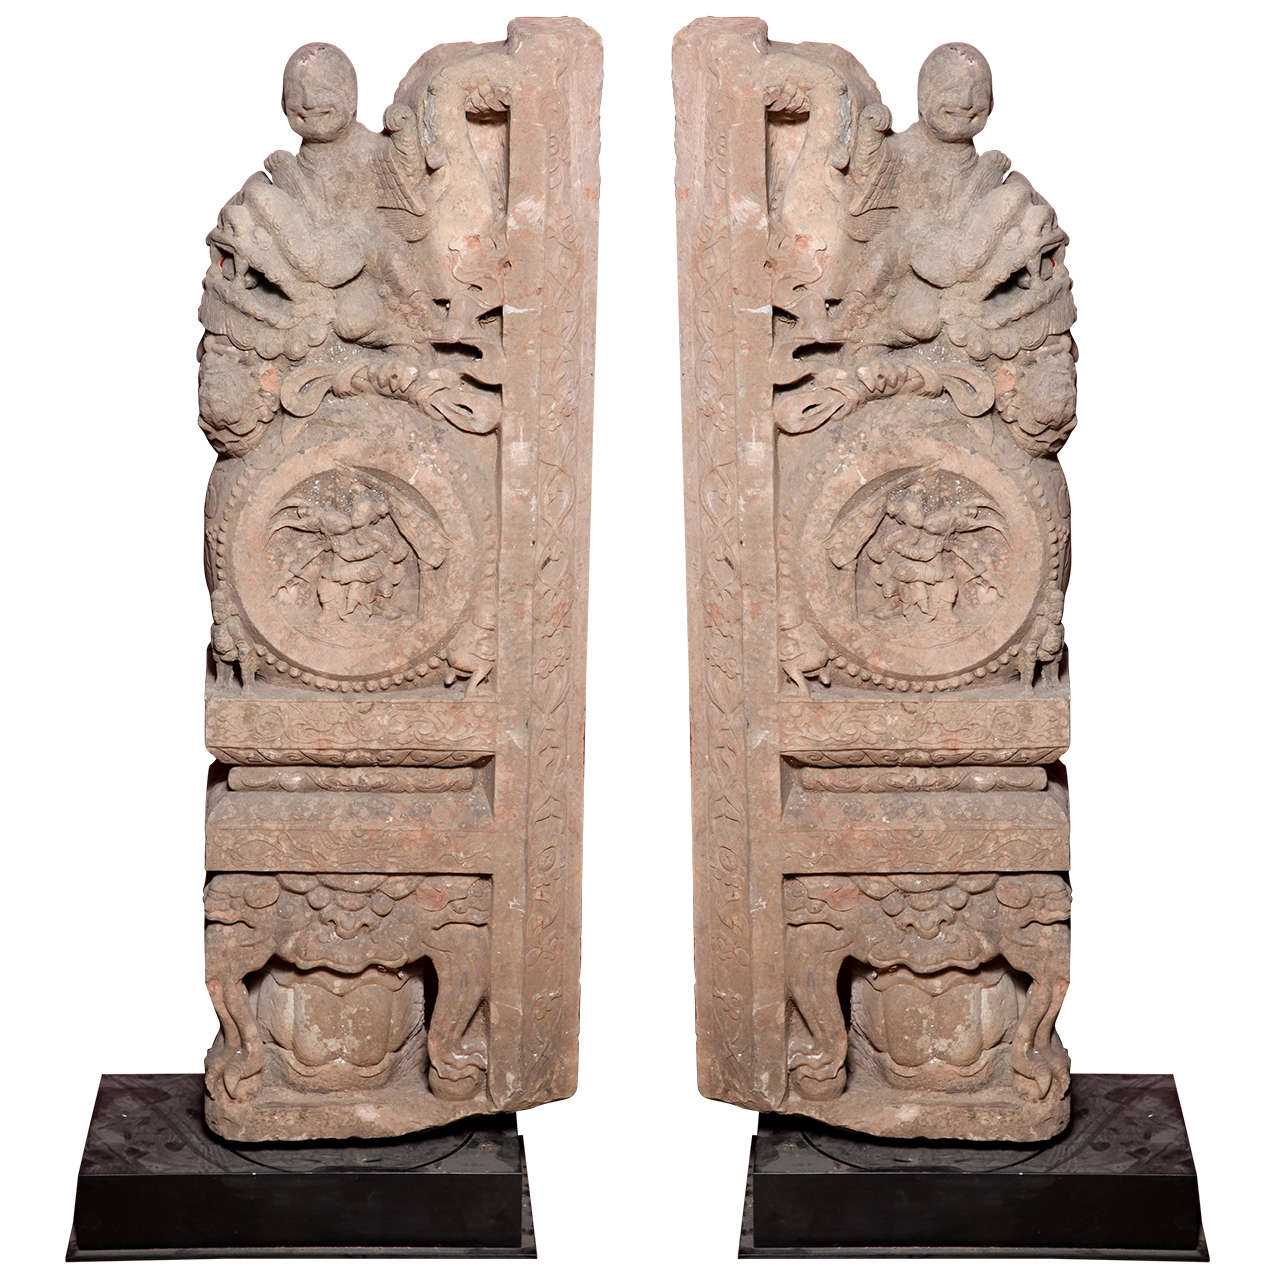 Stone carving souvenirs of pharaohs cats scarabs and gods on